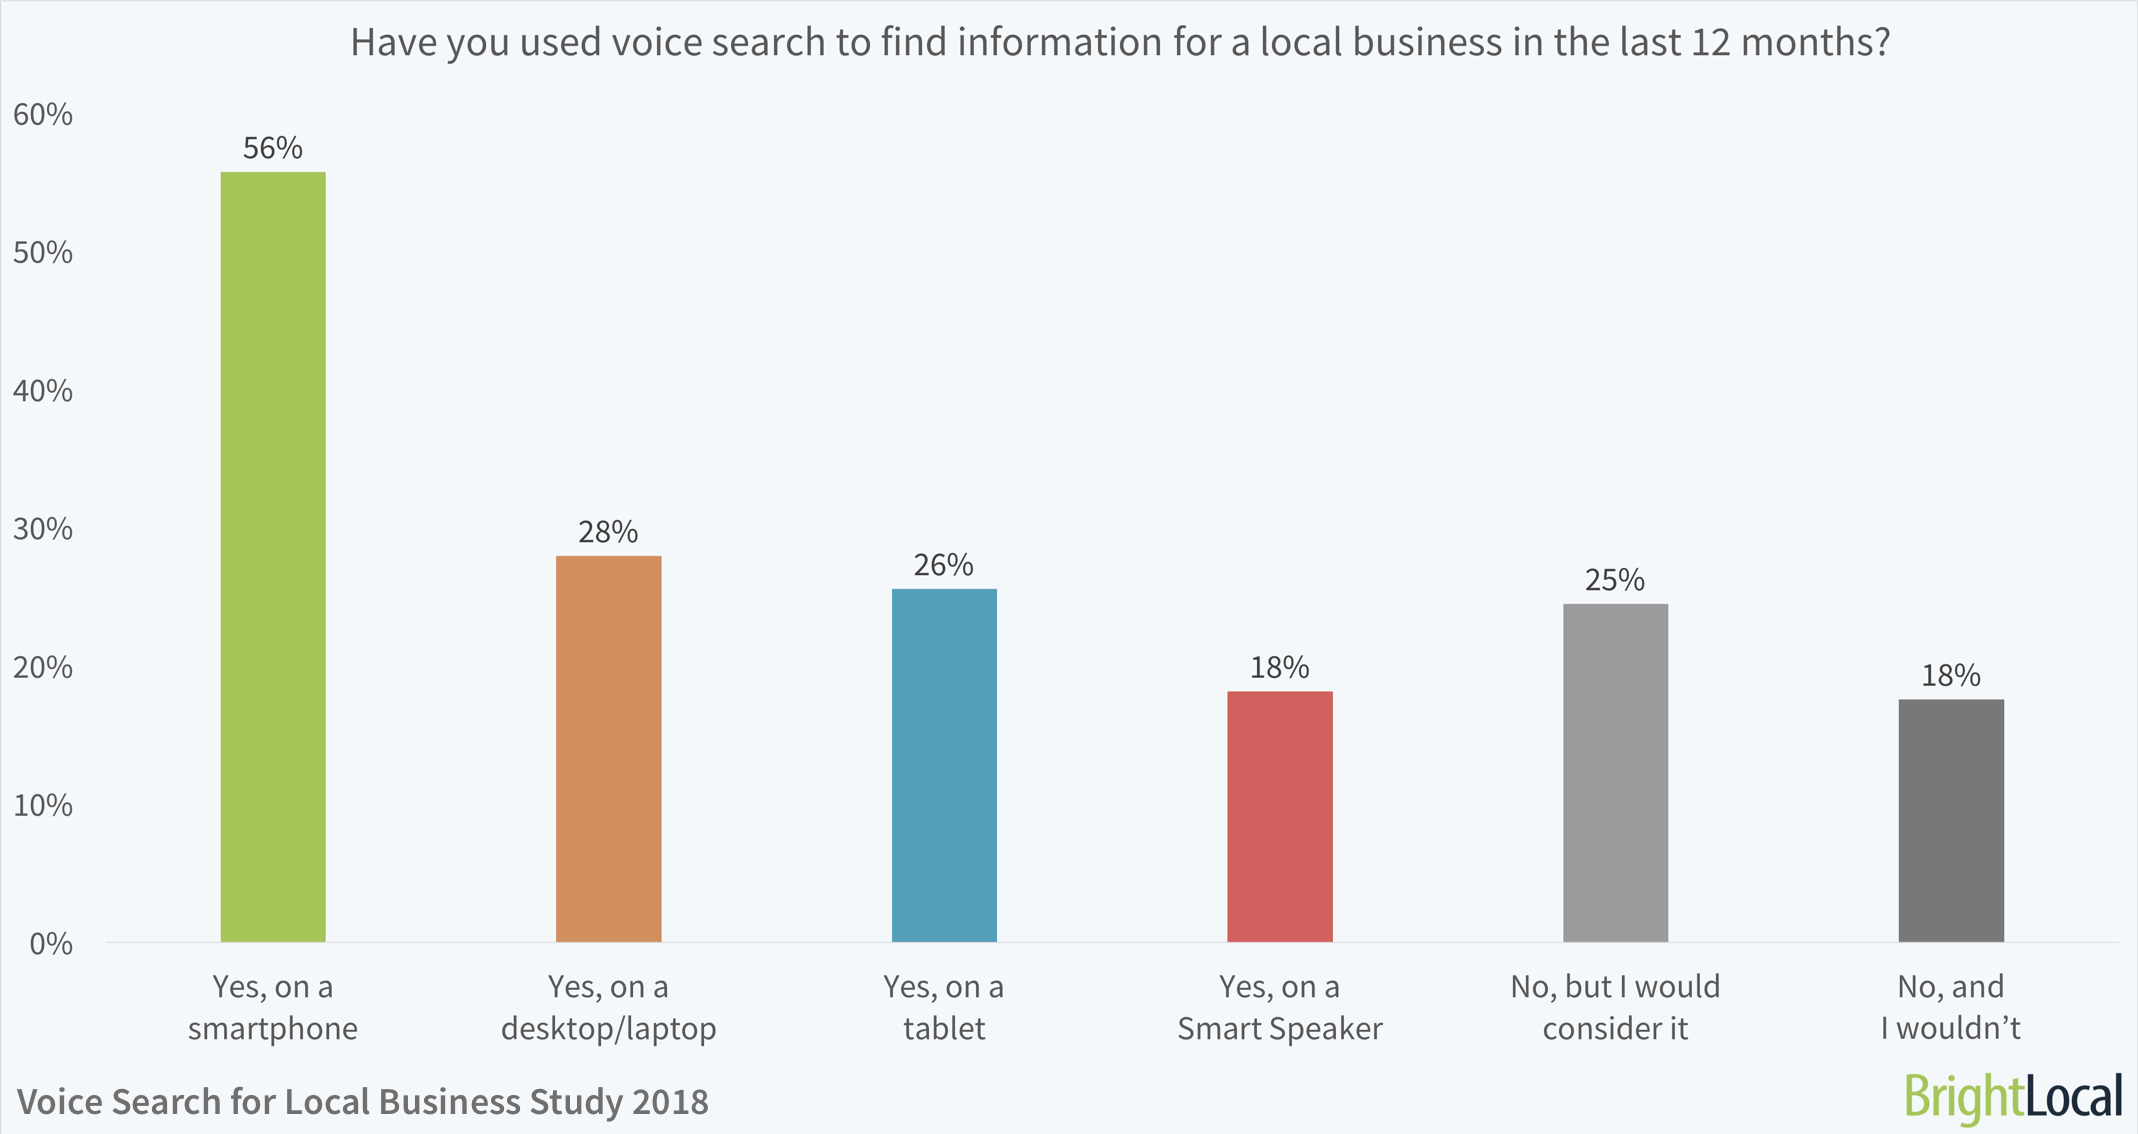 Have you used voice search to find information for a local business in the last 12 months? | BrightLocal Voice Search for Local Business Study